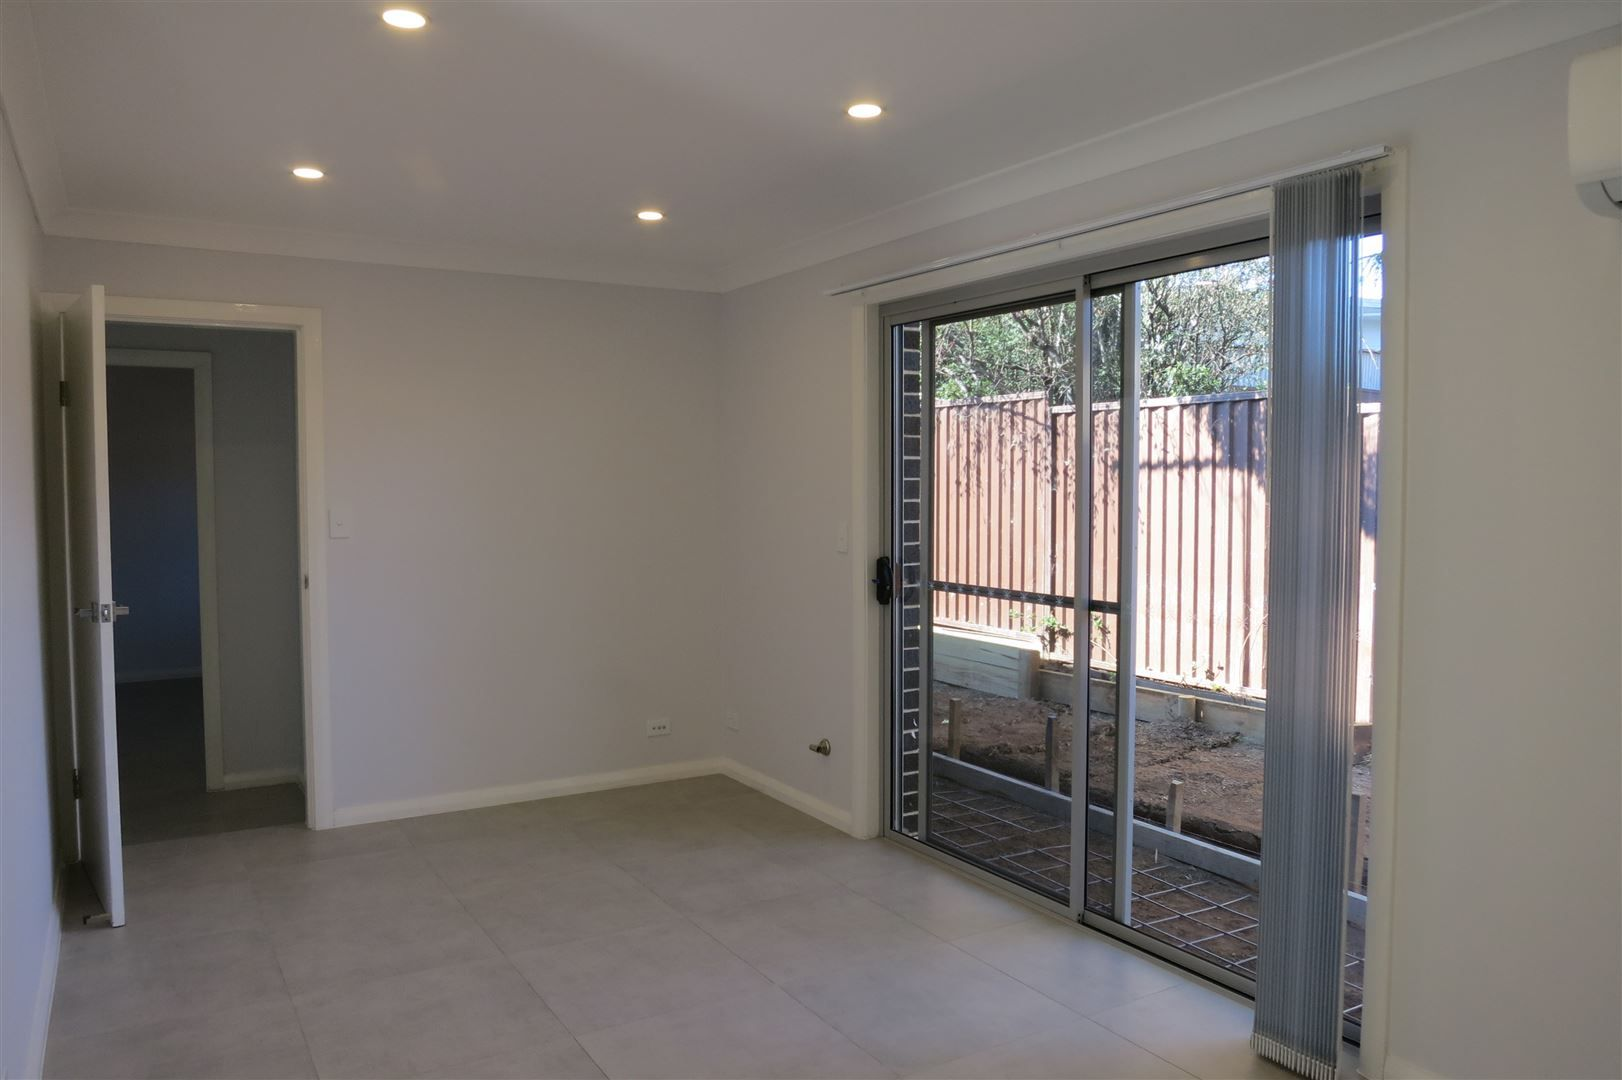 172A Bungarribee Road, Blacktown NSW 2148, Image 2